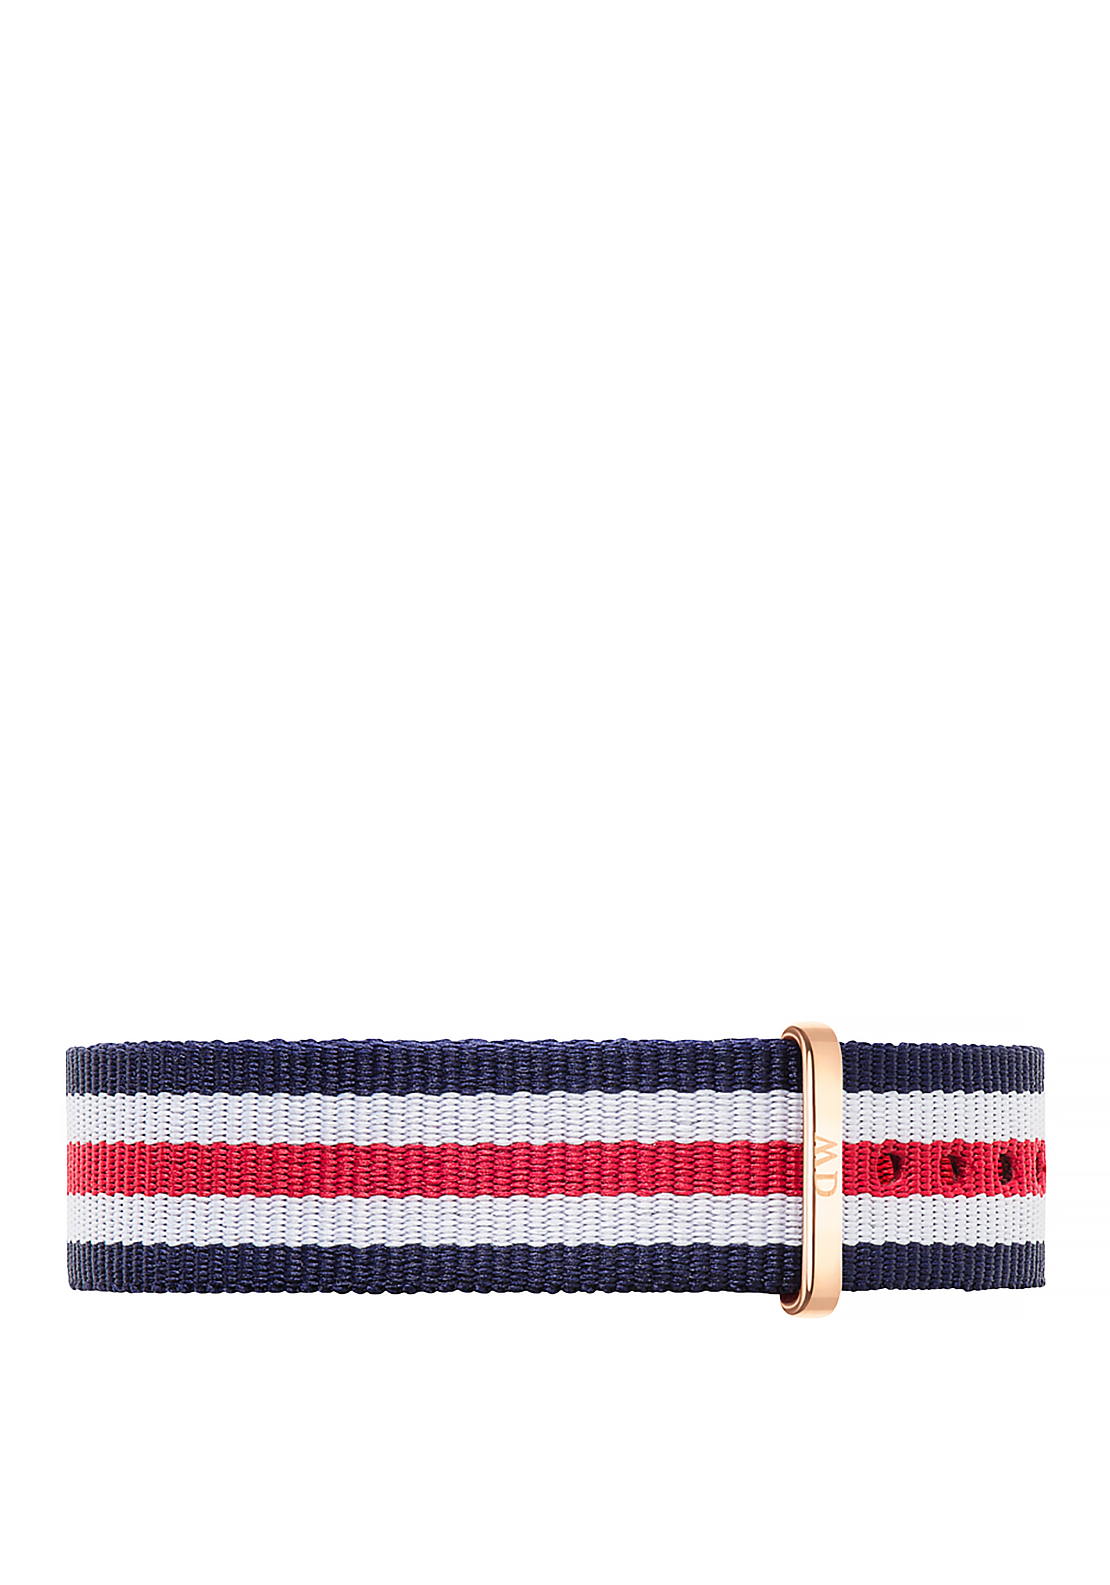 Daniel Wellington Classic Canterbury Wristband Strap 18mm Silver, Red White & Navy